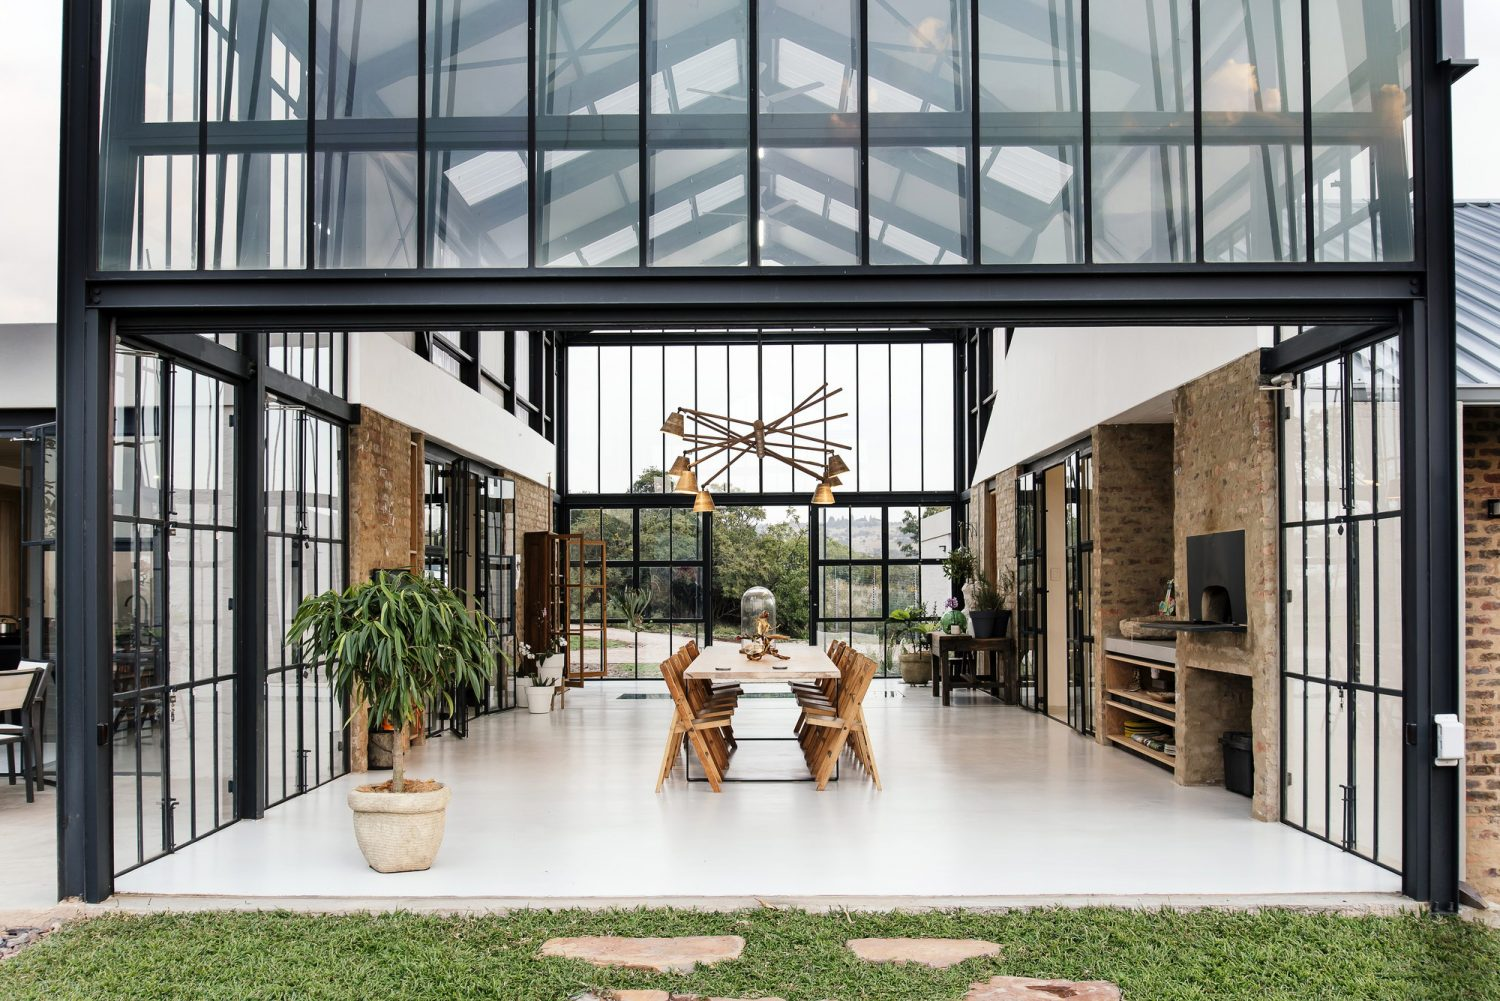 The Conservatory by Nadine Engelbrecht